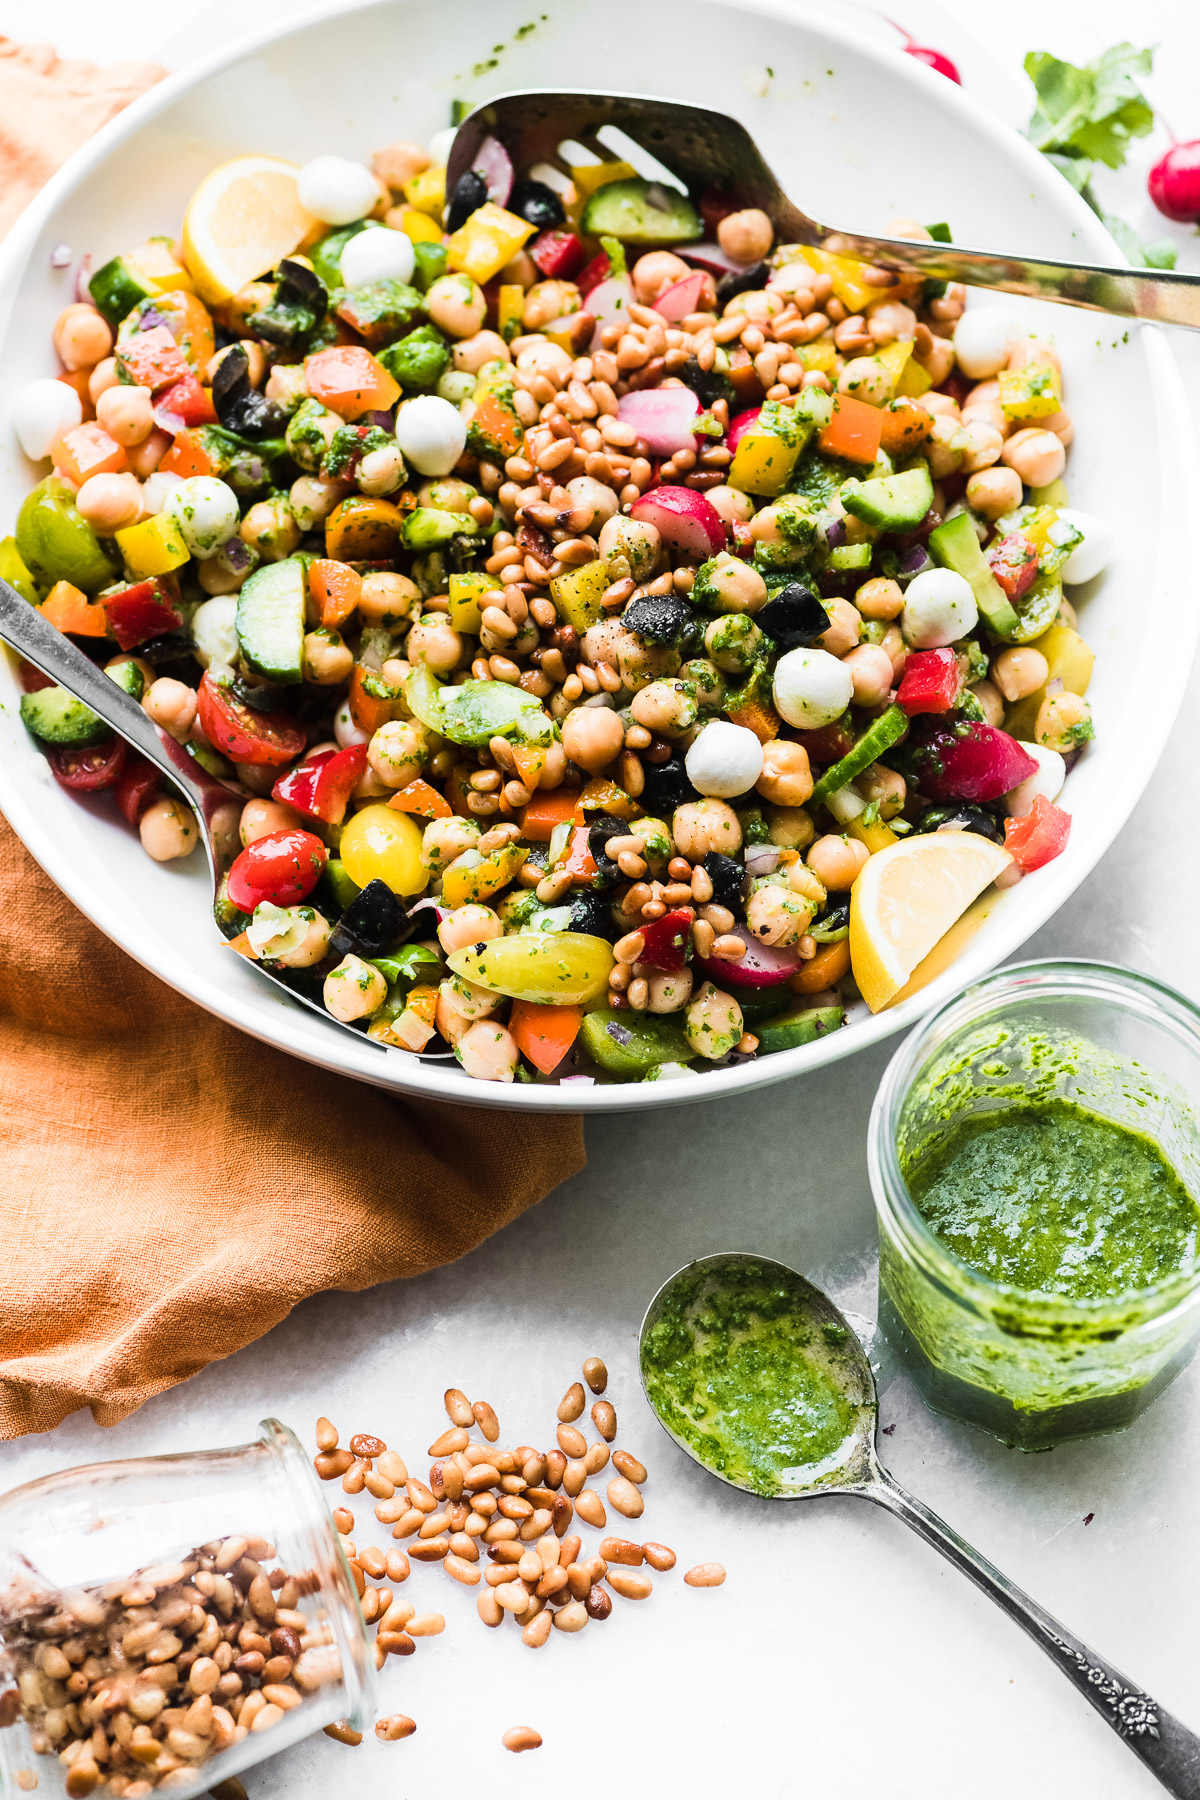 Healthy Chickpea Salad with Pesto with napkin, jar of pesto, and pine nuts